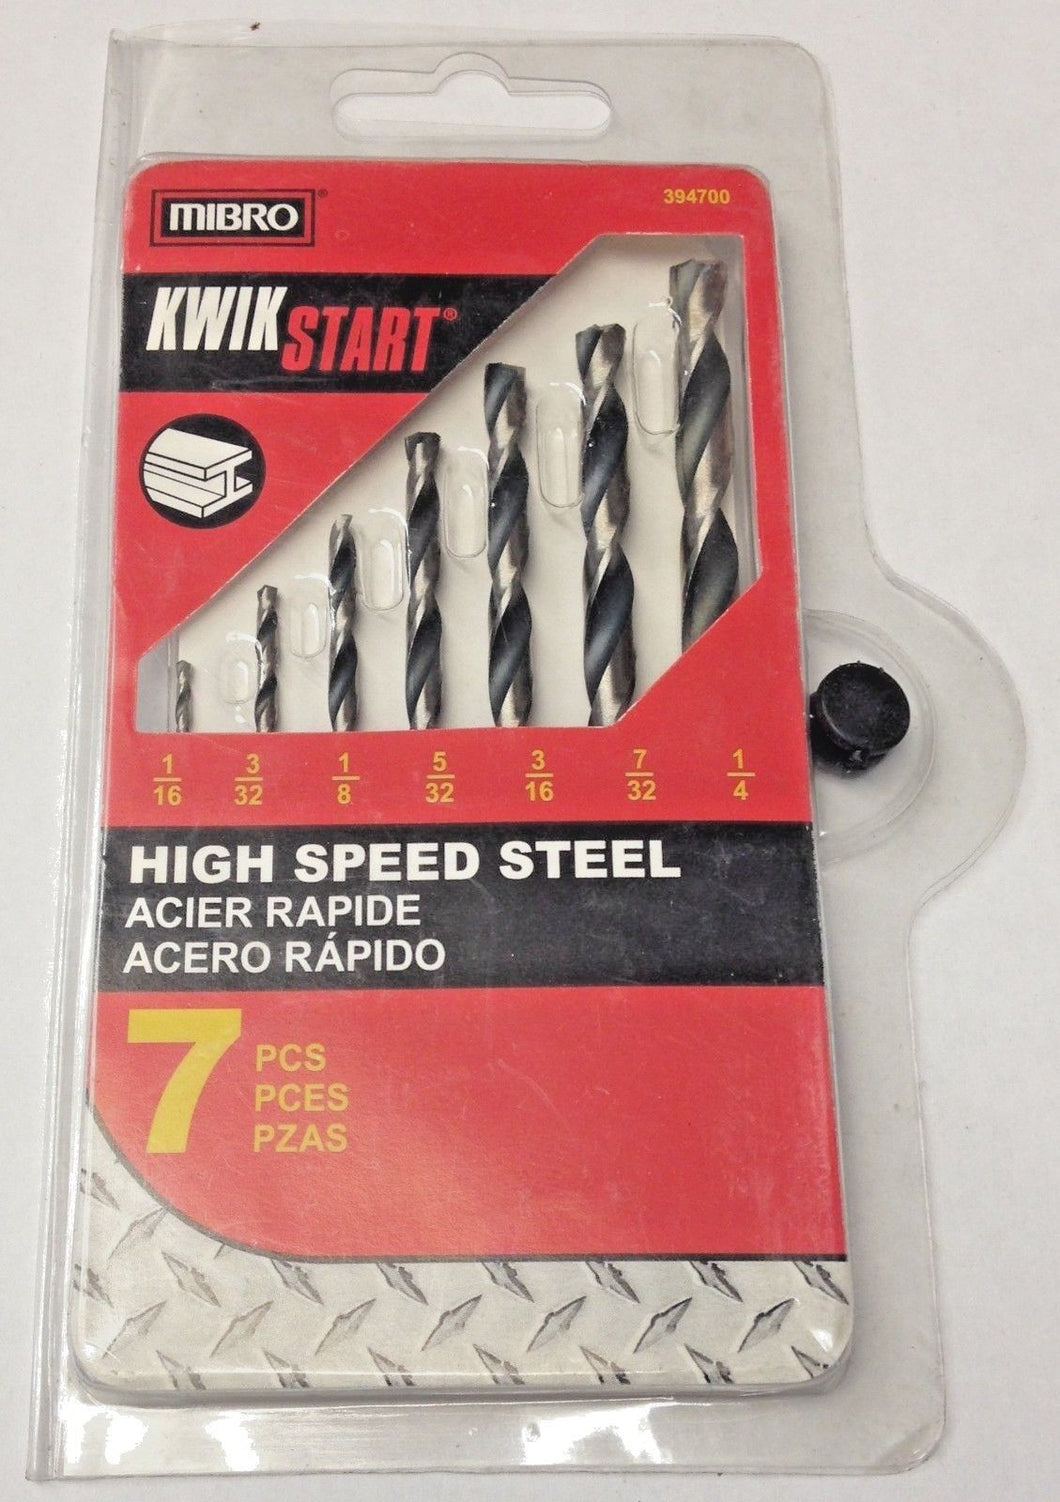 Mibro 394700 7 Piece Kwik Start High Speed Steel Drill Bit Set 1/16